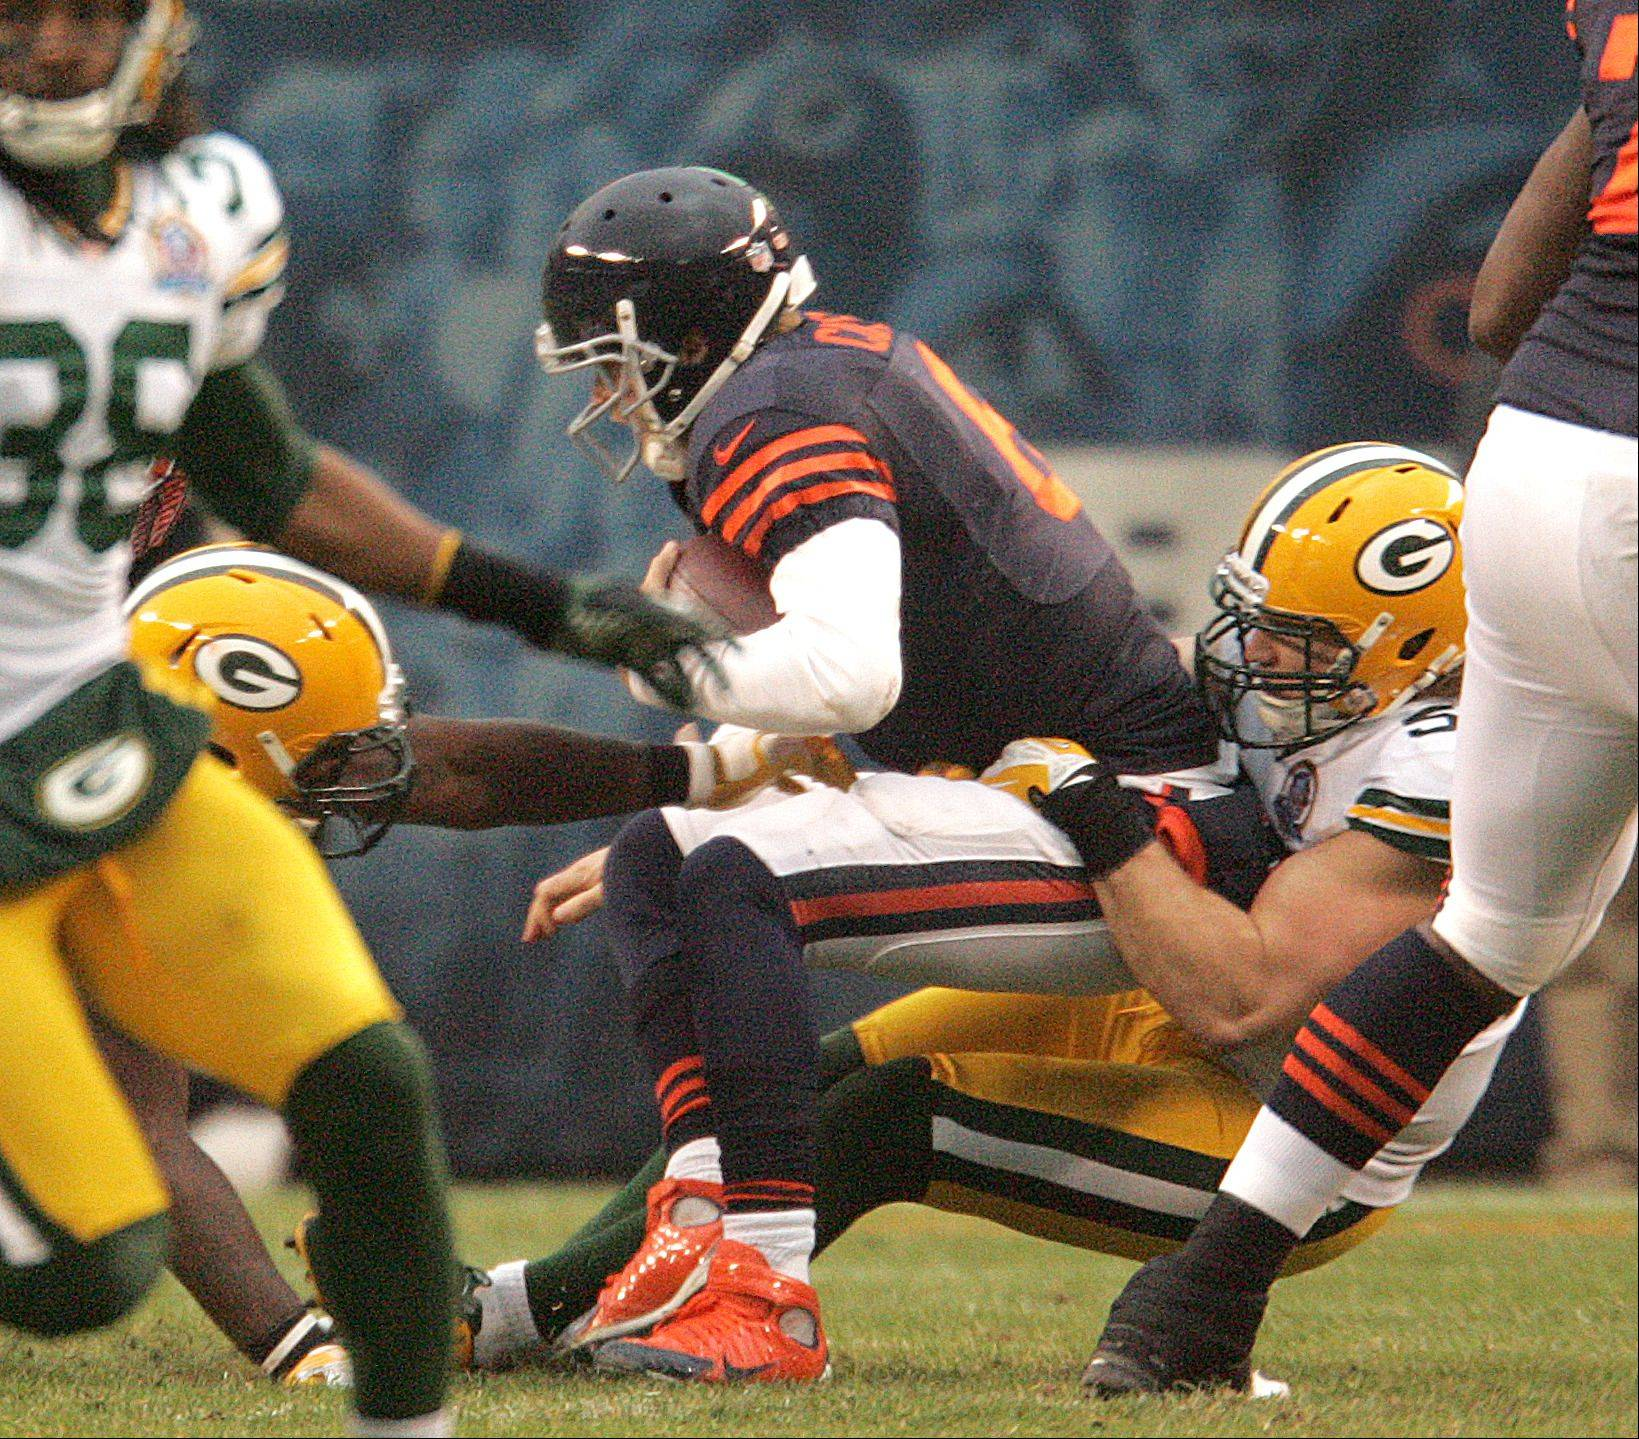 Bears quarterback Jay Cutler (6) is sacked by Green Bay Packers outside linebacker Clay Matthews (52) during Sunday's game at Soldier Field in Chicago.